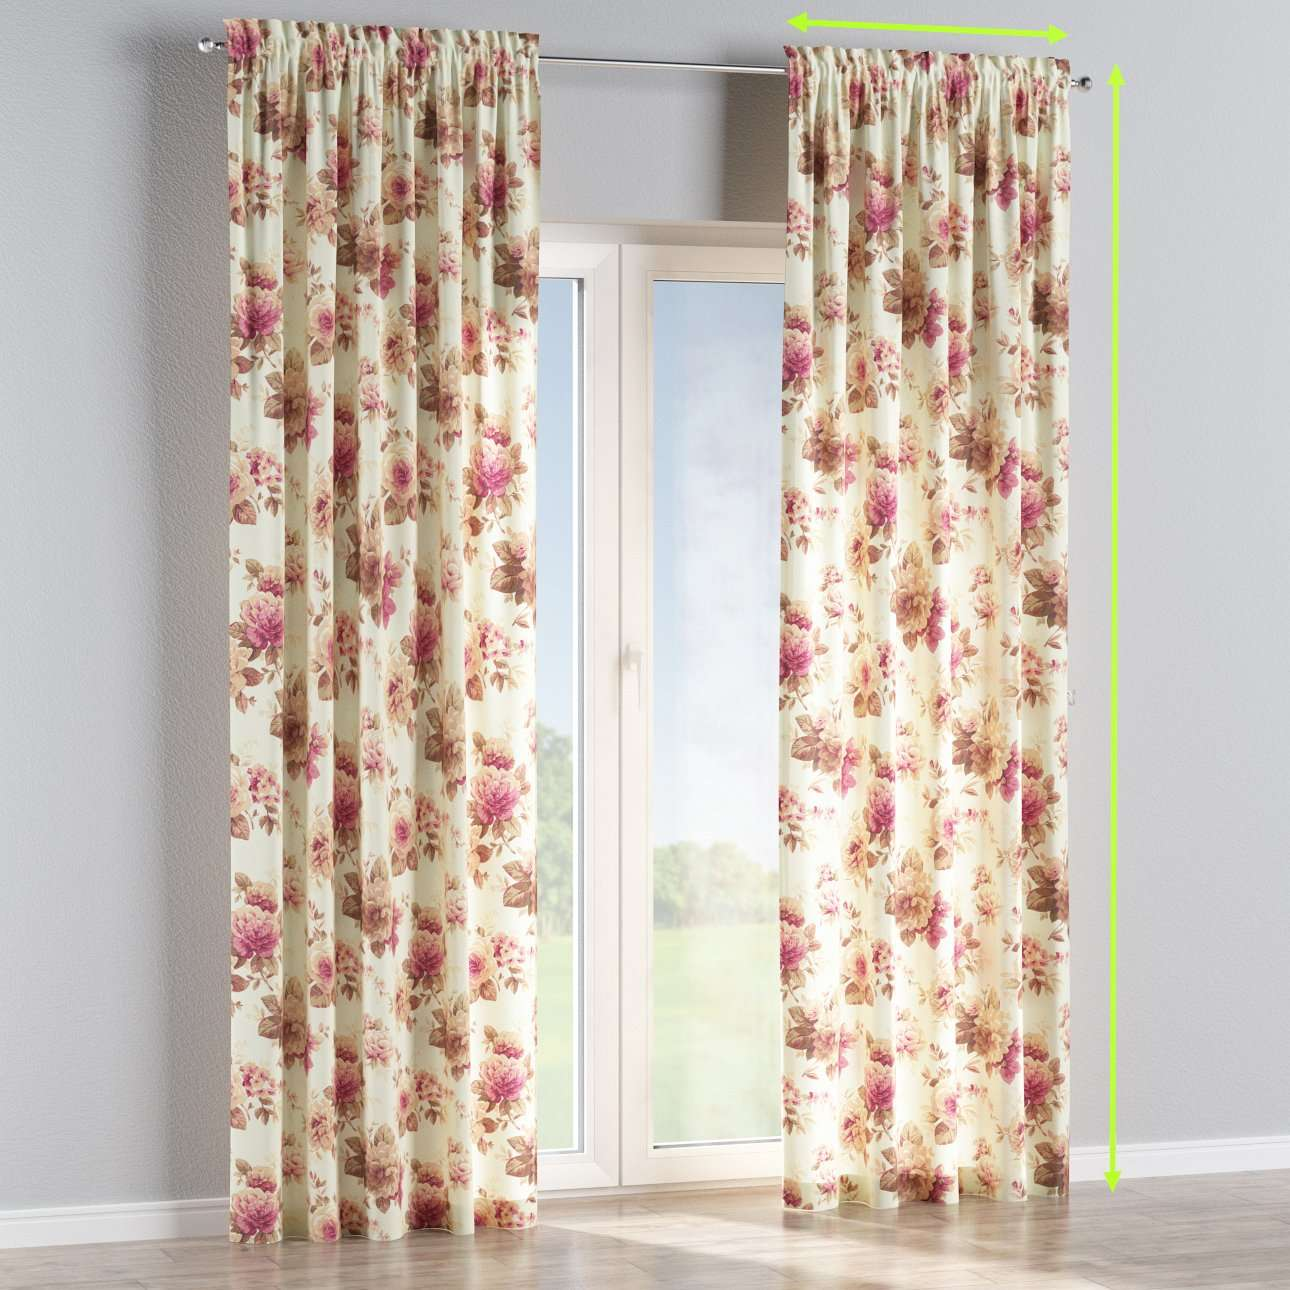 Slot and frill lined curtains in collection Mirella, fabric: 141-06